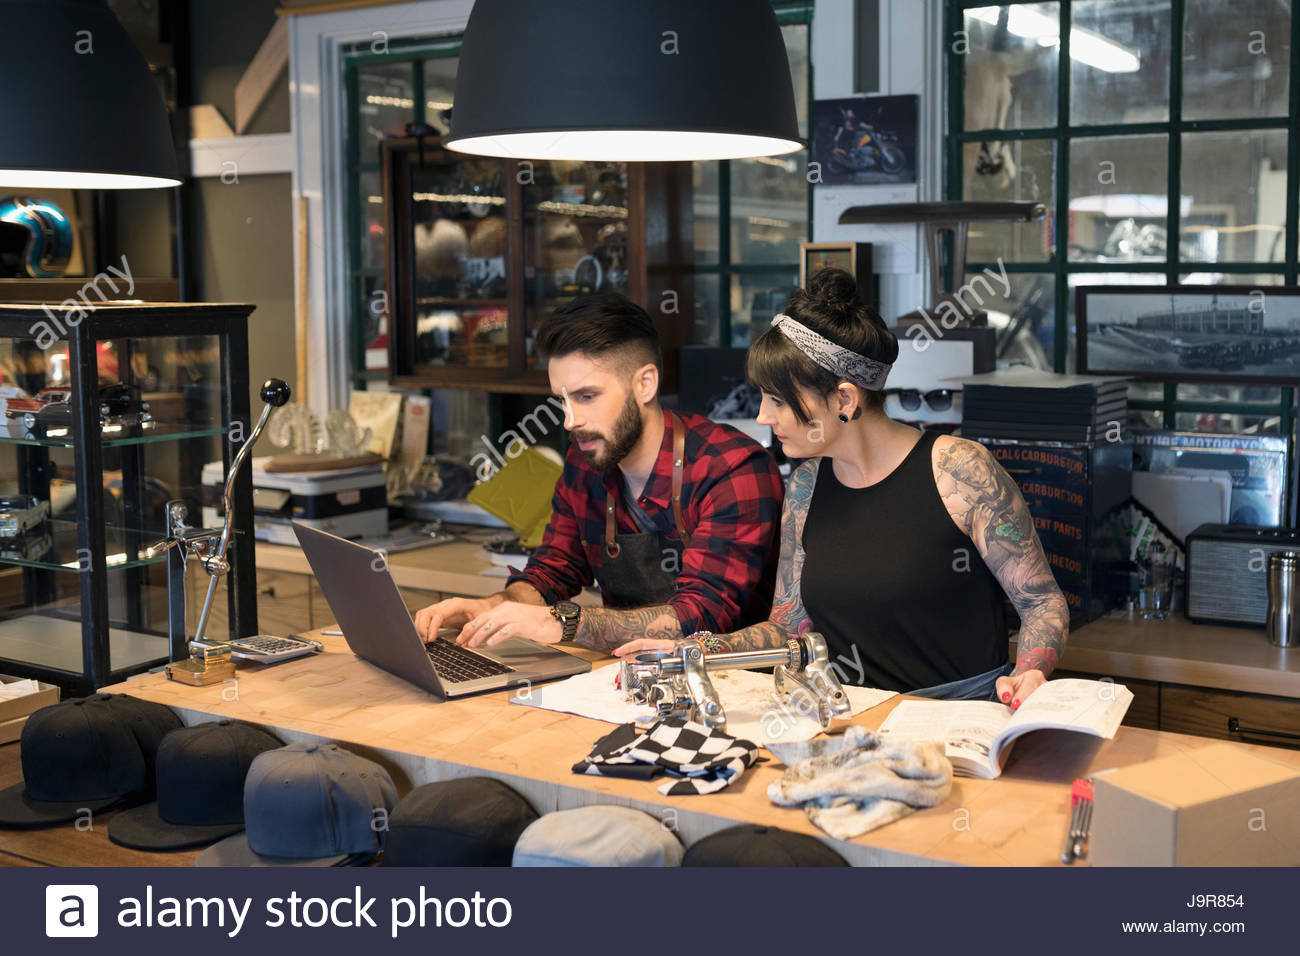 Motorcycle mechanic shop owners order parts at laptop behind counter - Stock Image